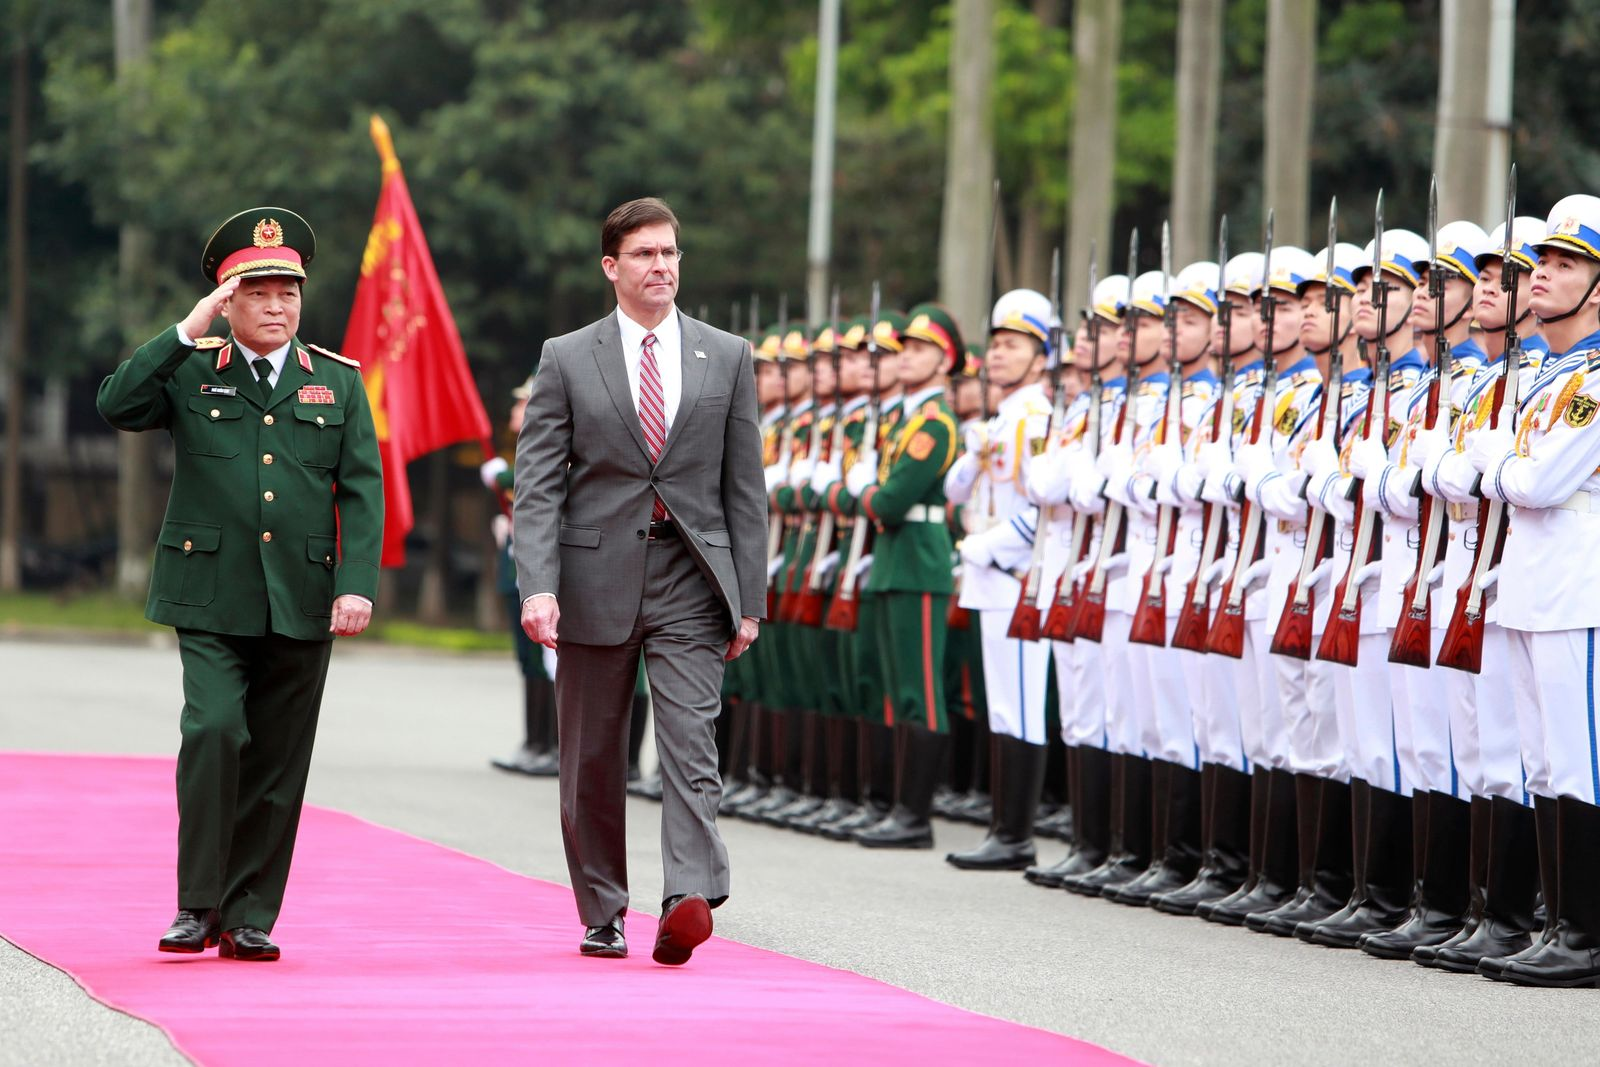 U.S. Defense Secretary Mark Esper, center, and Vietnamese Defense Minister Ngo Xuan Lich review an honor guard in Hanoi, Vietnam Wednesday, Nov. 20, 2019. (AP Photo/Hau Dinh)